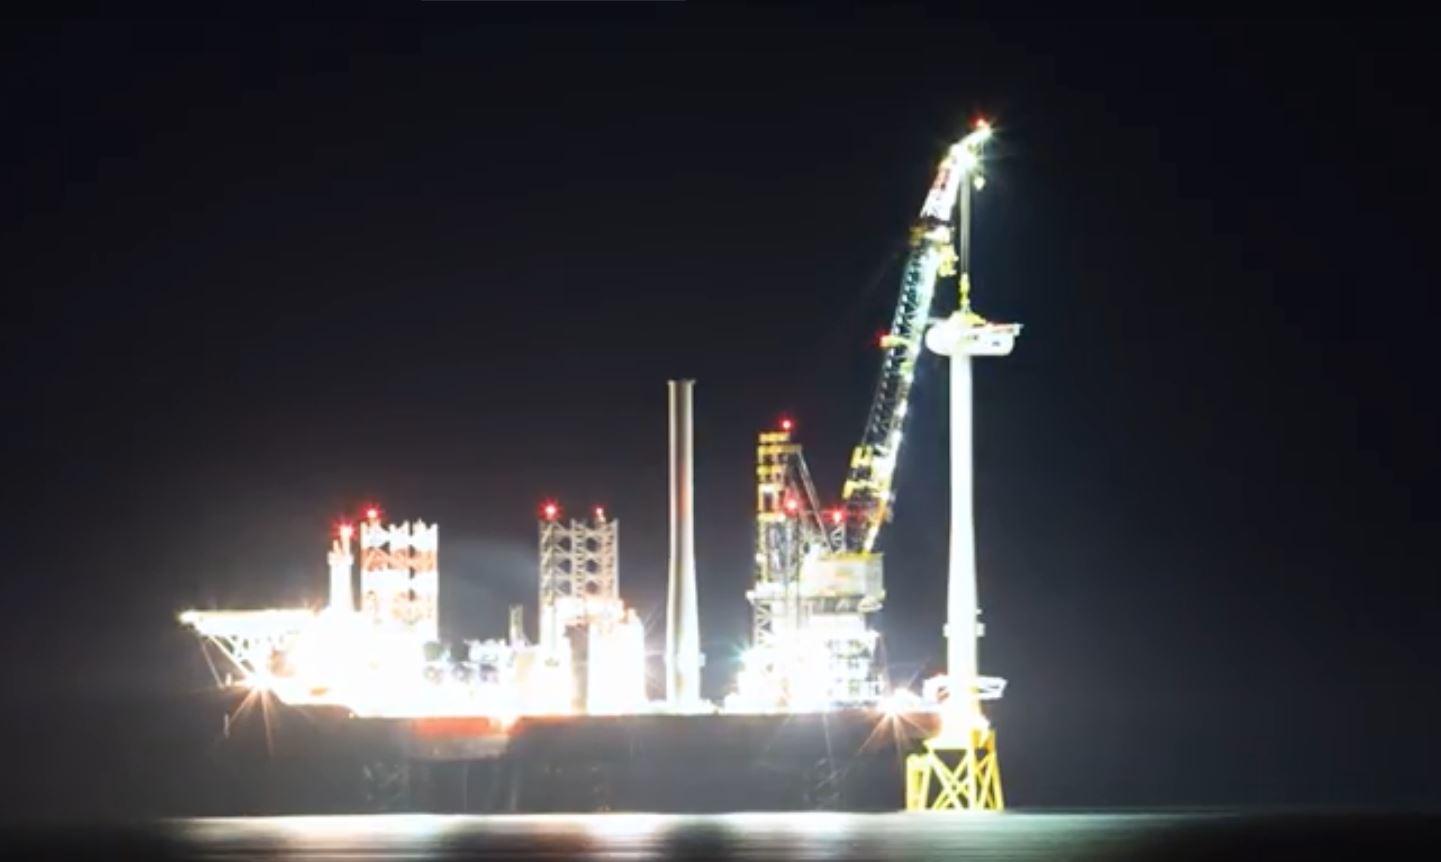 Aberdeen Offshore Wind Farm work at night.